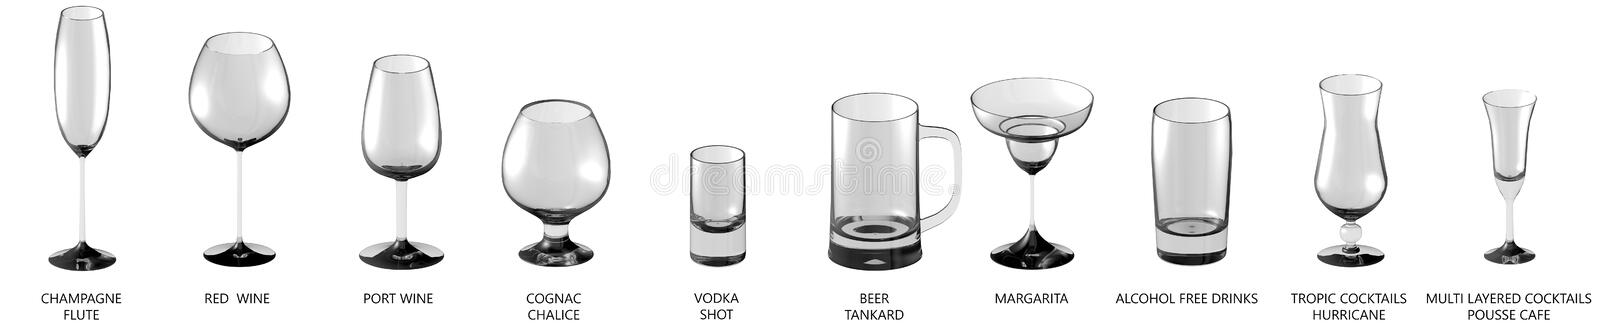 illustration 3D du grand ensemble de divers verres pour les boissons fortes d'alcool et de cocktails d'isolement sur la vue blanc illustration stock